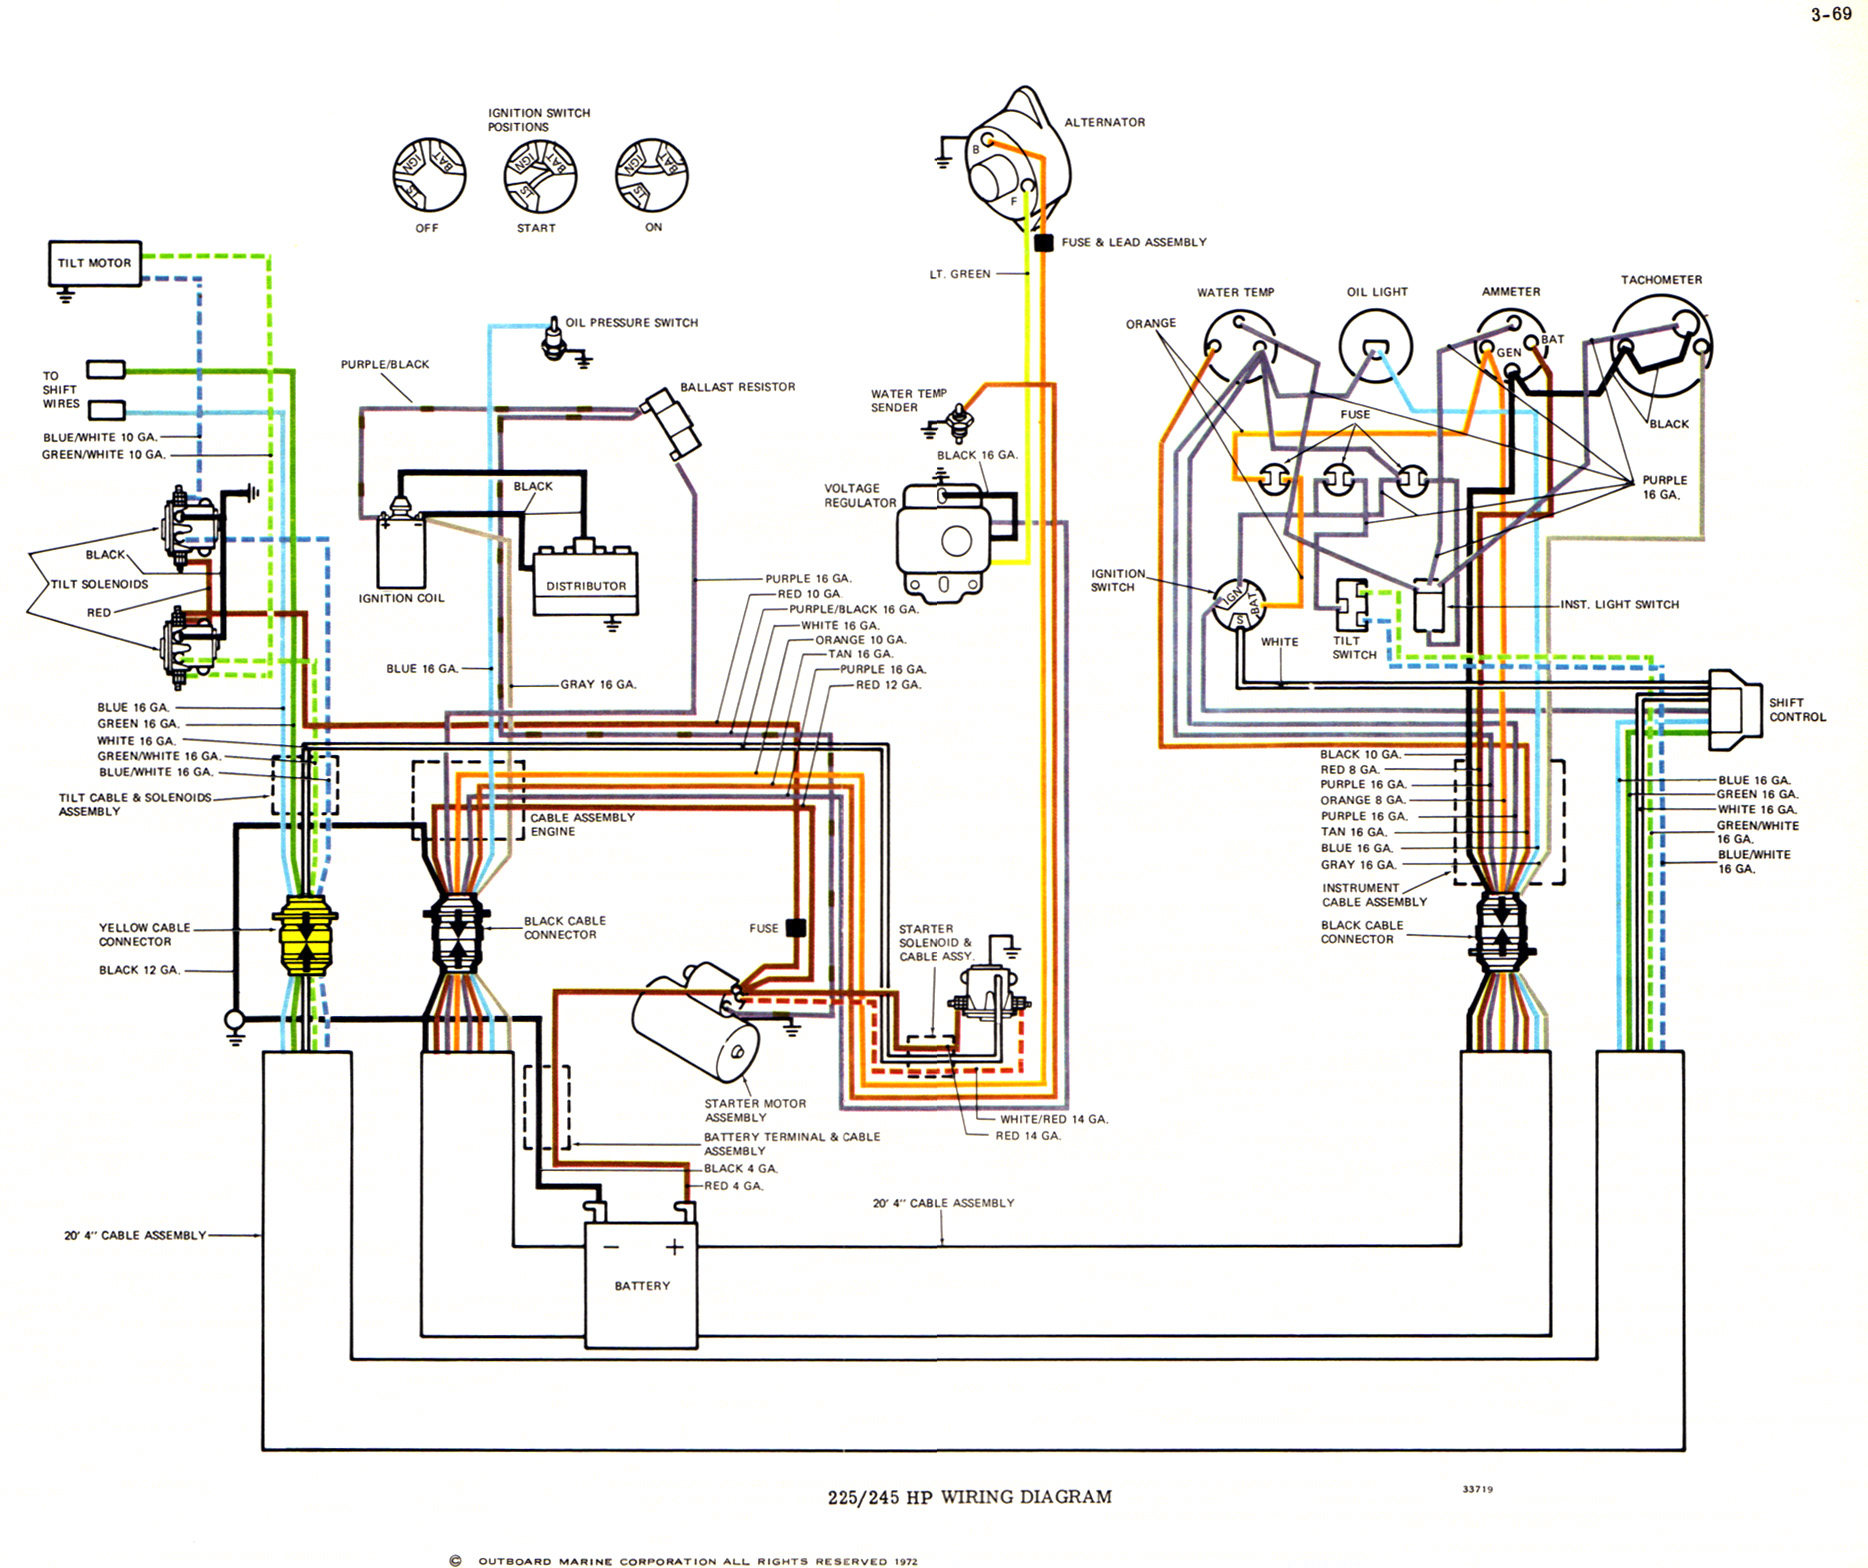 V8 Chevy Engine Wiring Diagram 1977 Content Resource Of Full Schematics Diagrams U2022 Rh Parntesis Co Truck Nova